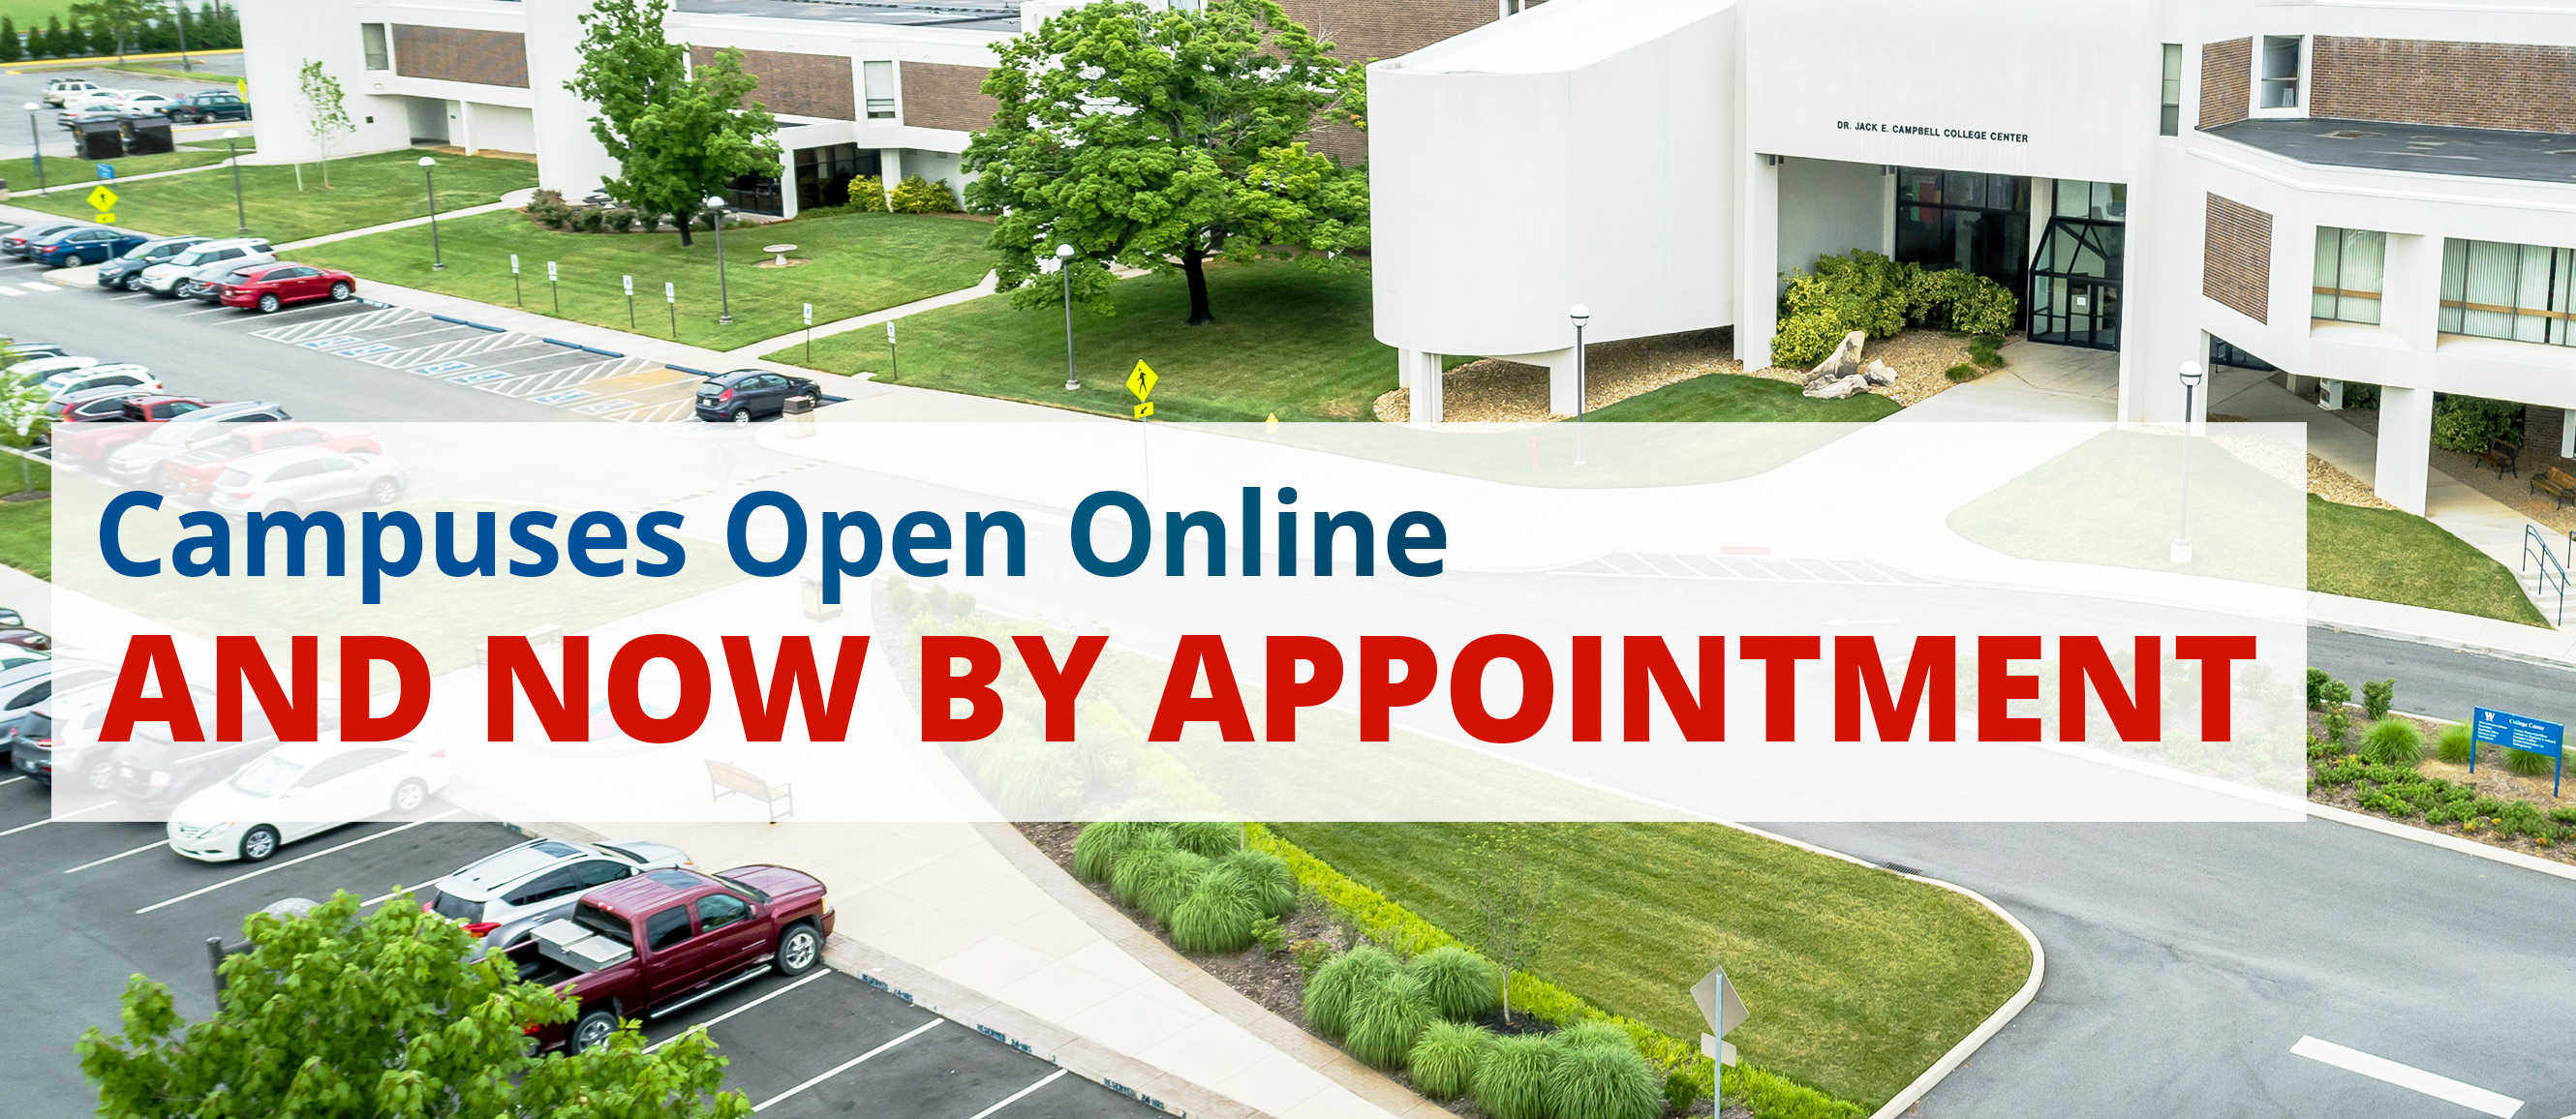 Campuses Open Online and Now by Appointment.